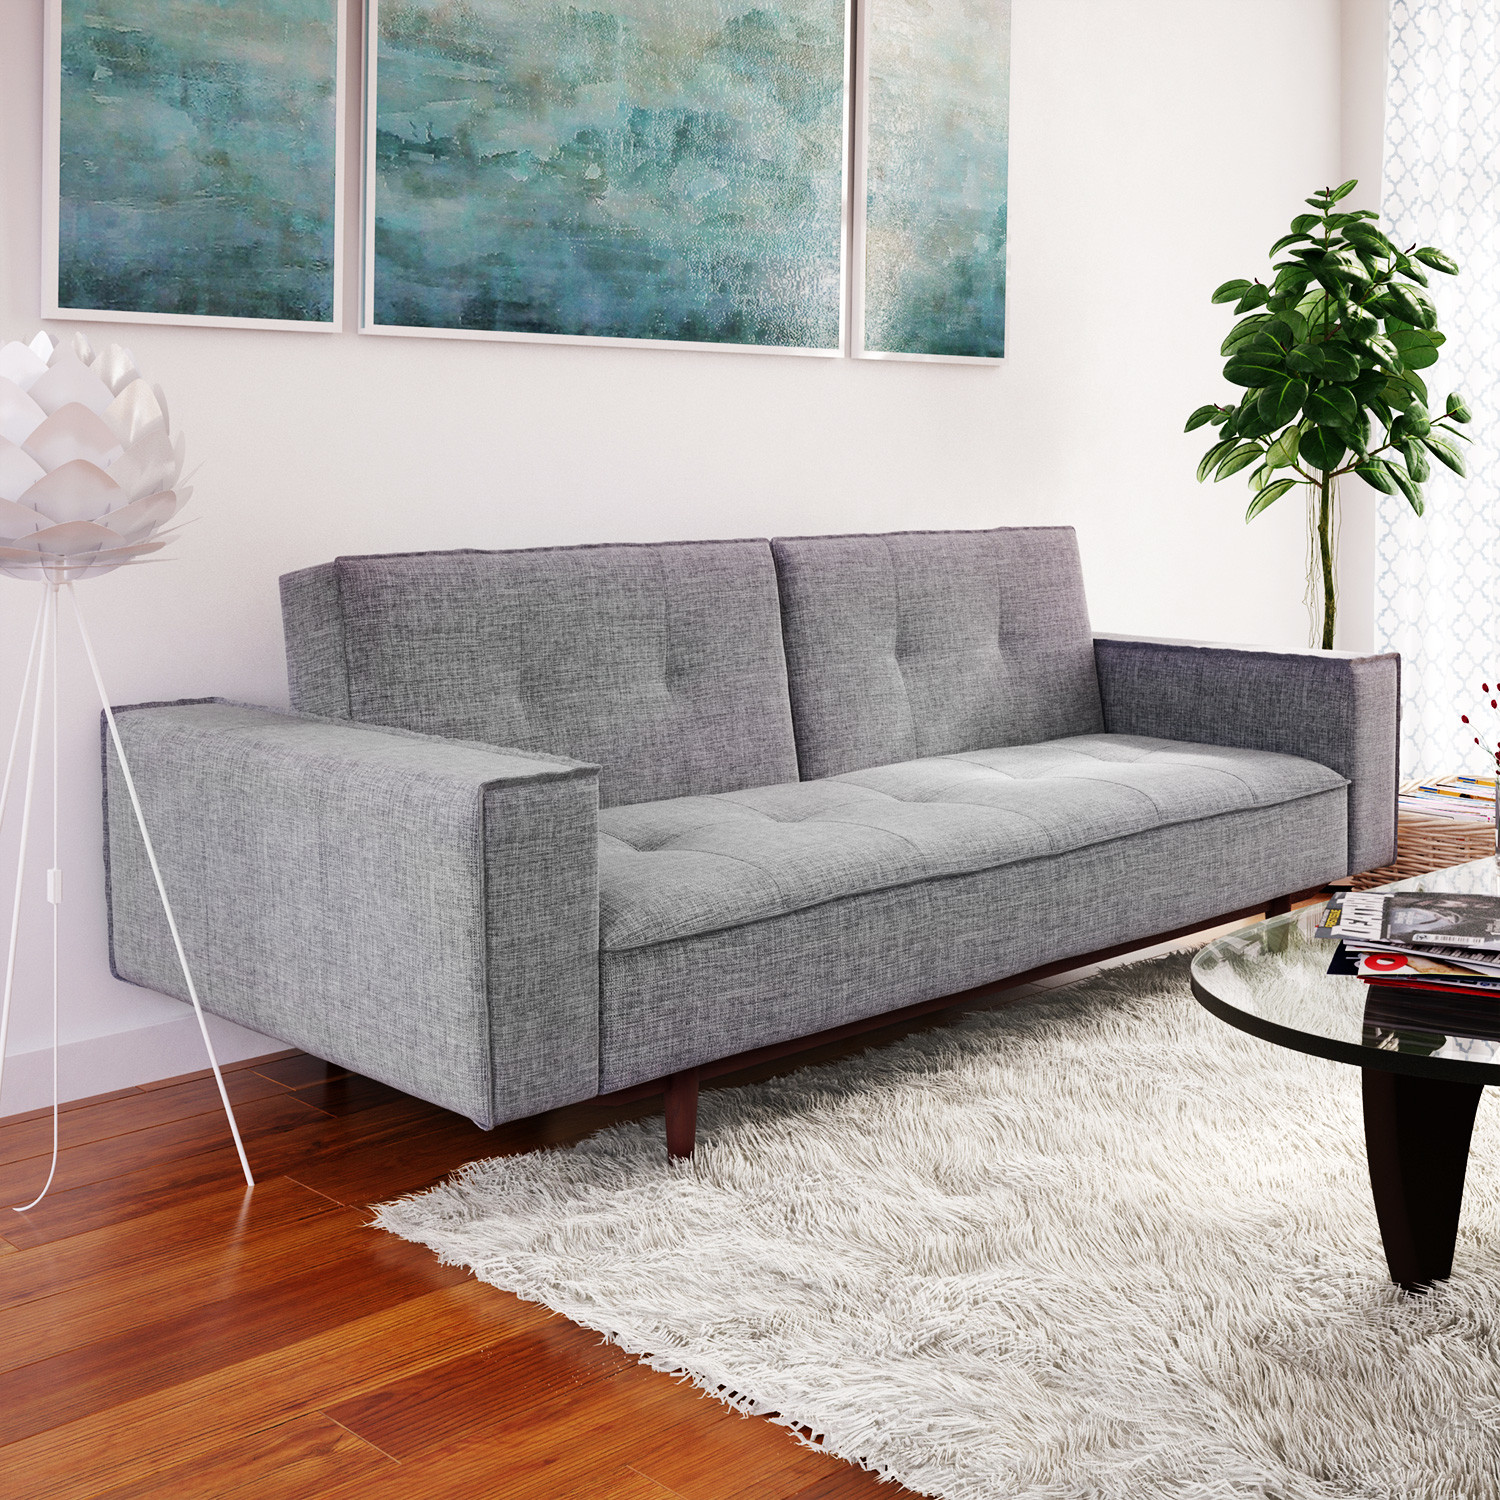 Best ideas about Living Room Couches . Save or Pin Modern & Contemporary Living Room Furniture Now.